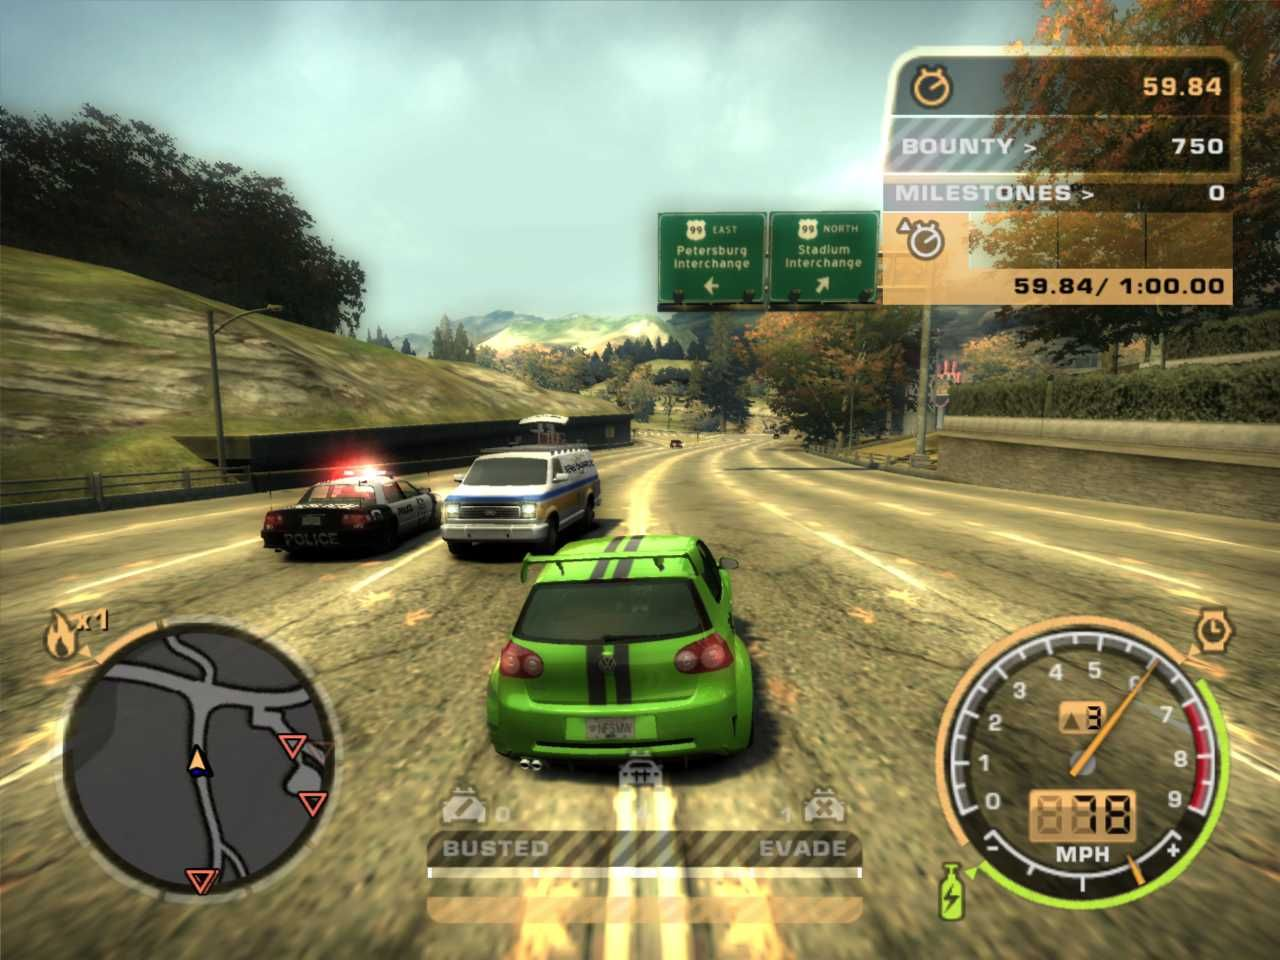 Free NFS Most Wanted Download Full Version Pc Game [Highly